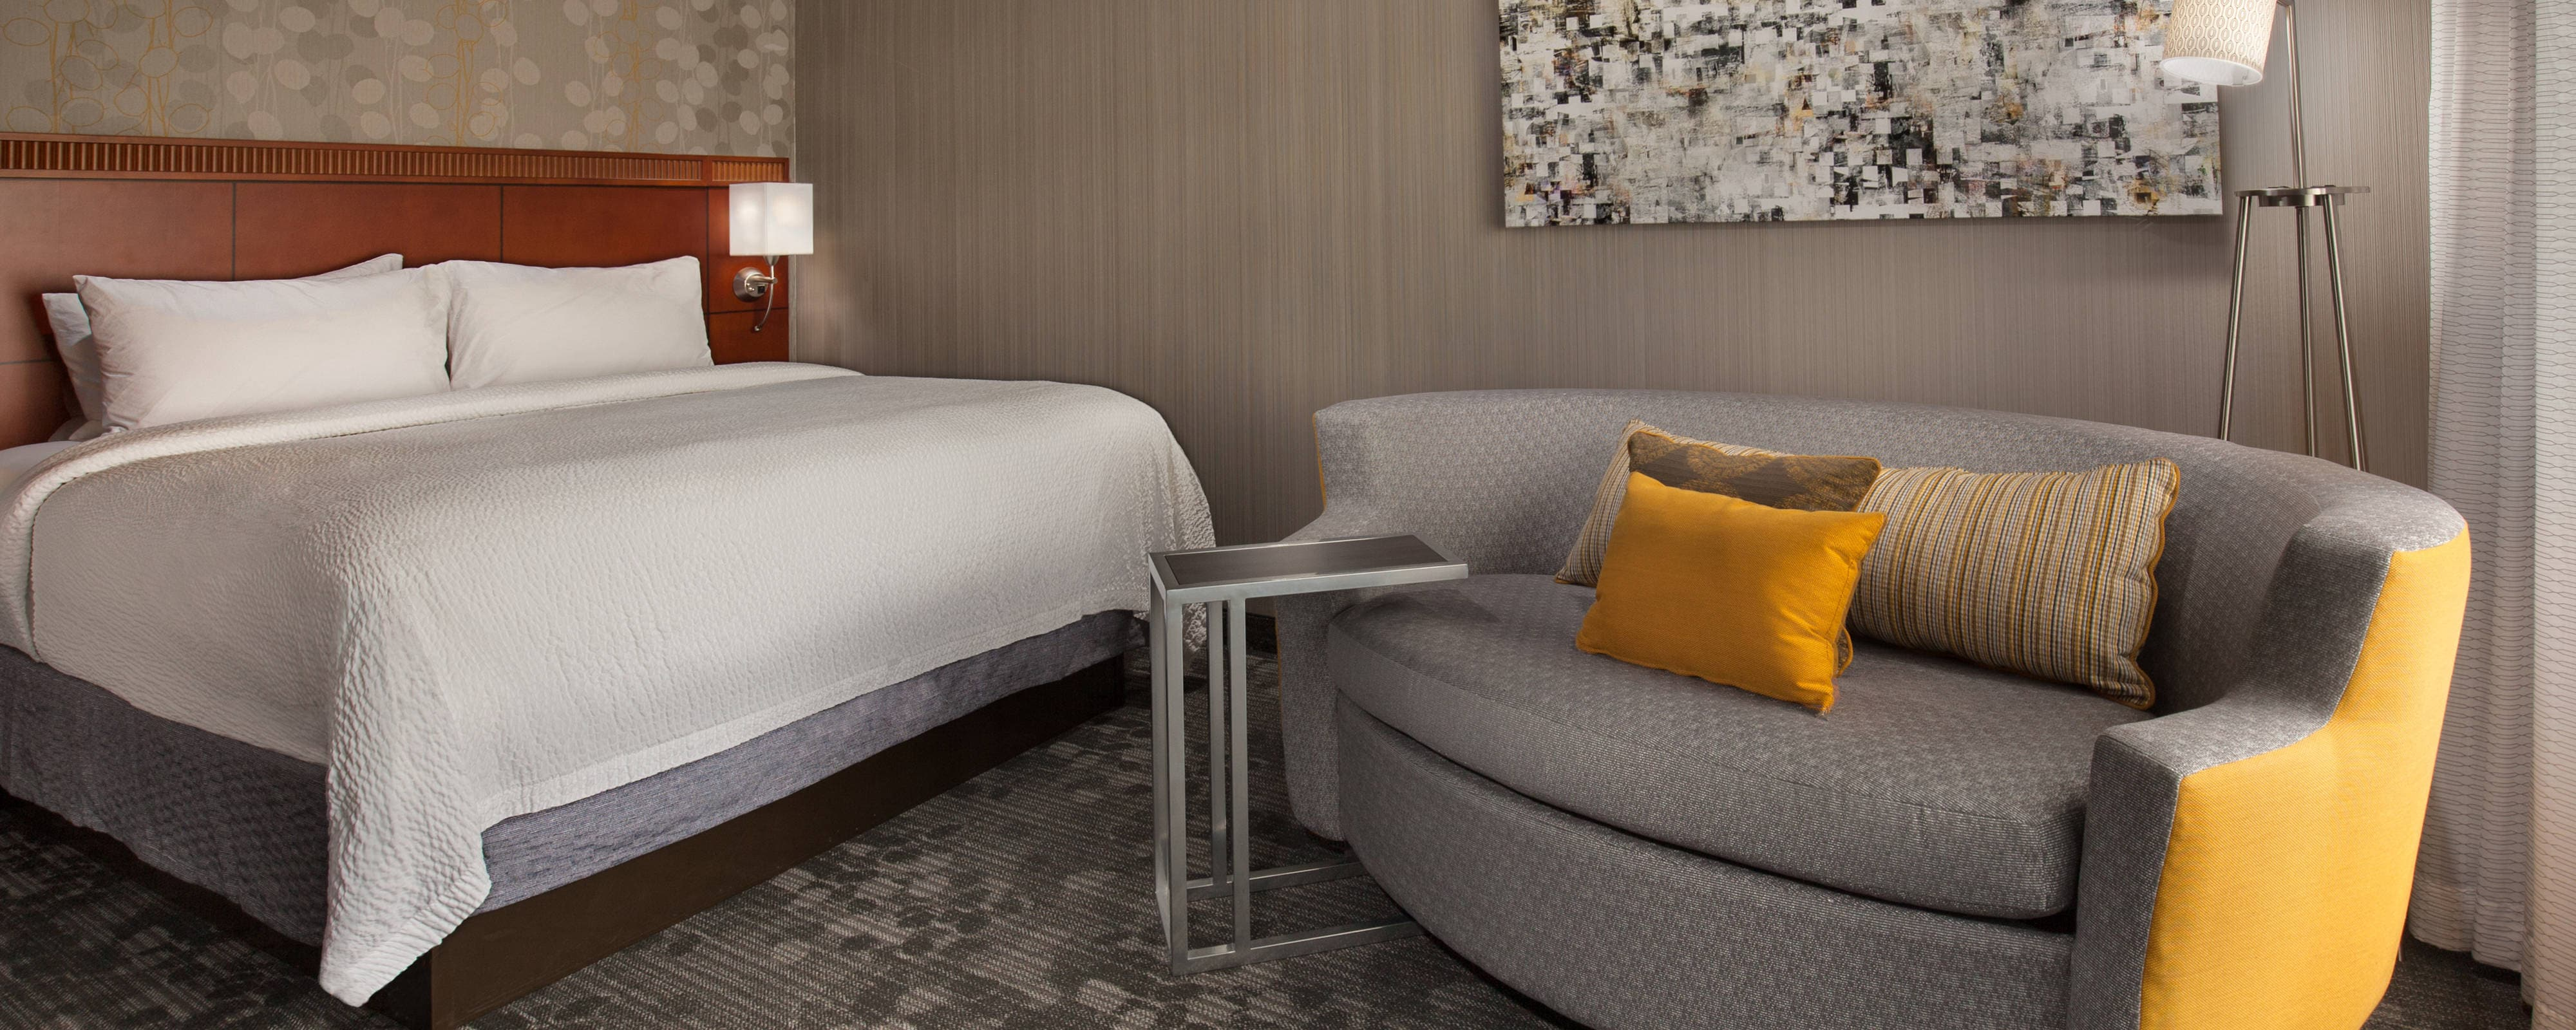 Harrisburg hotel accommodations